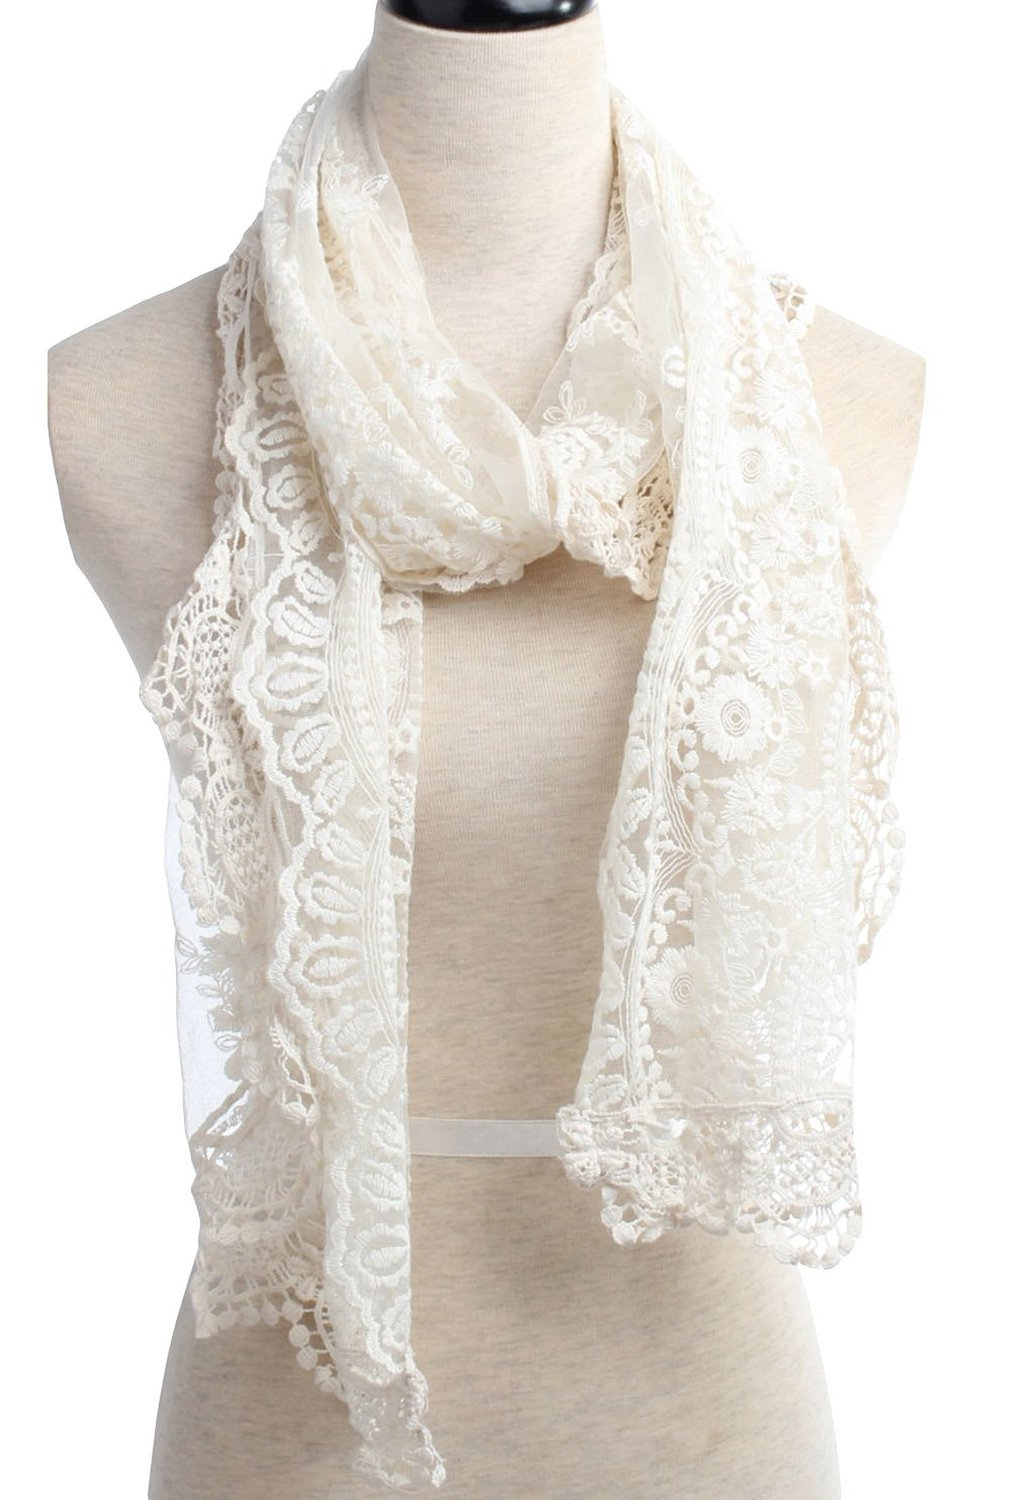 Lace Scarf Designs And Patterns Worldscarf Com